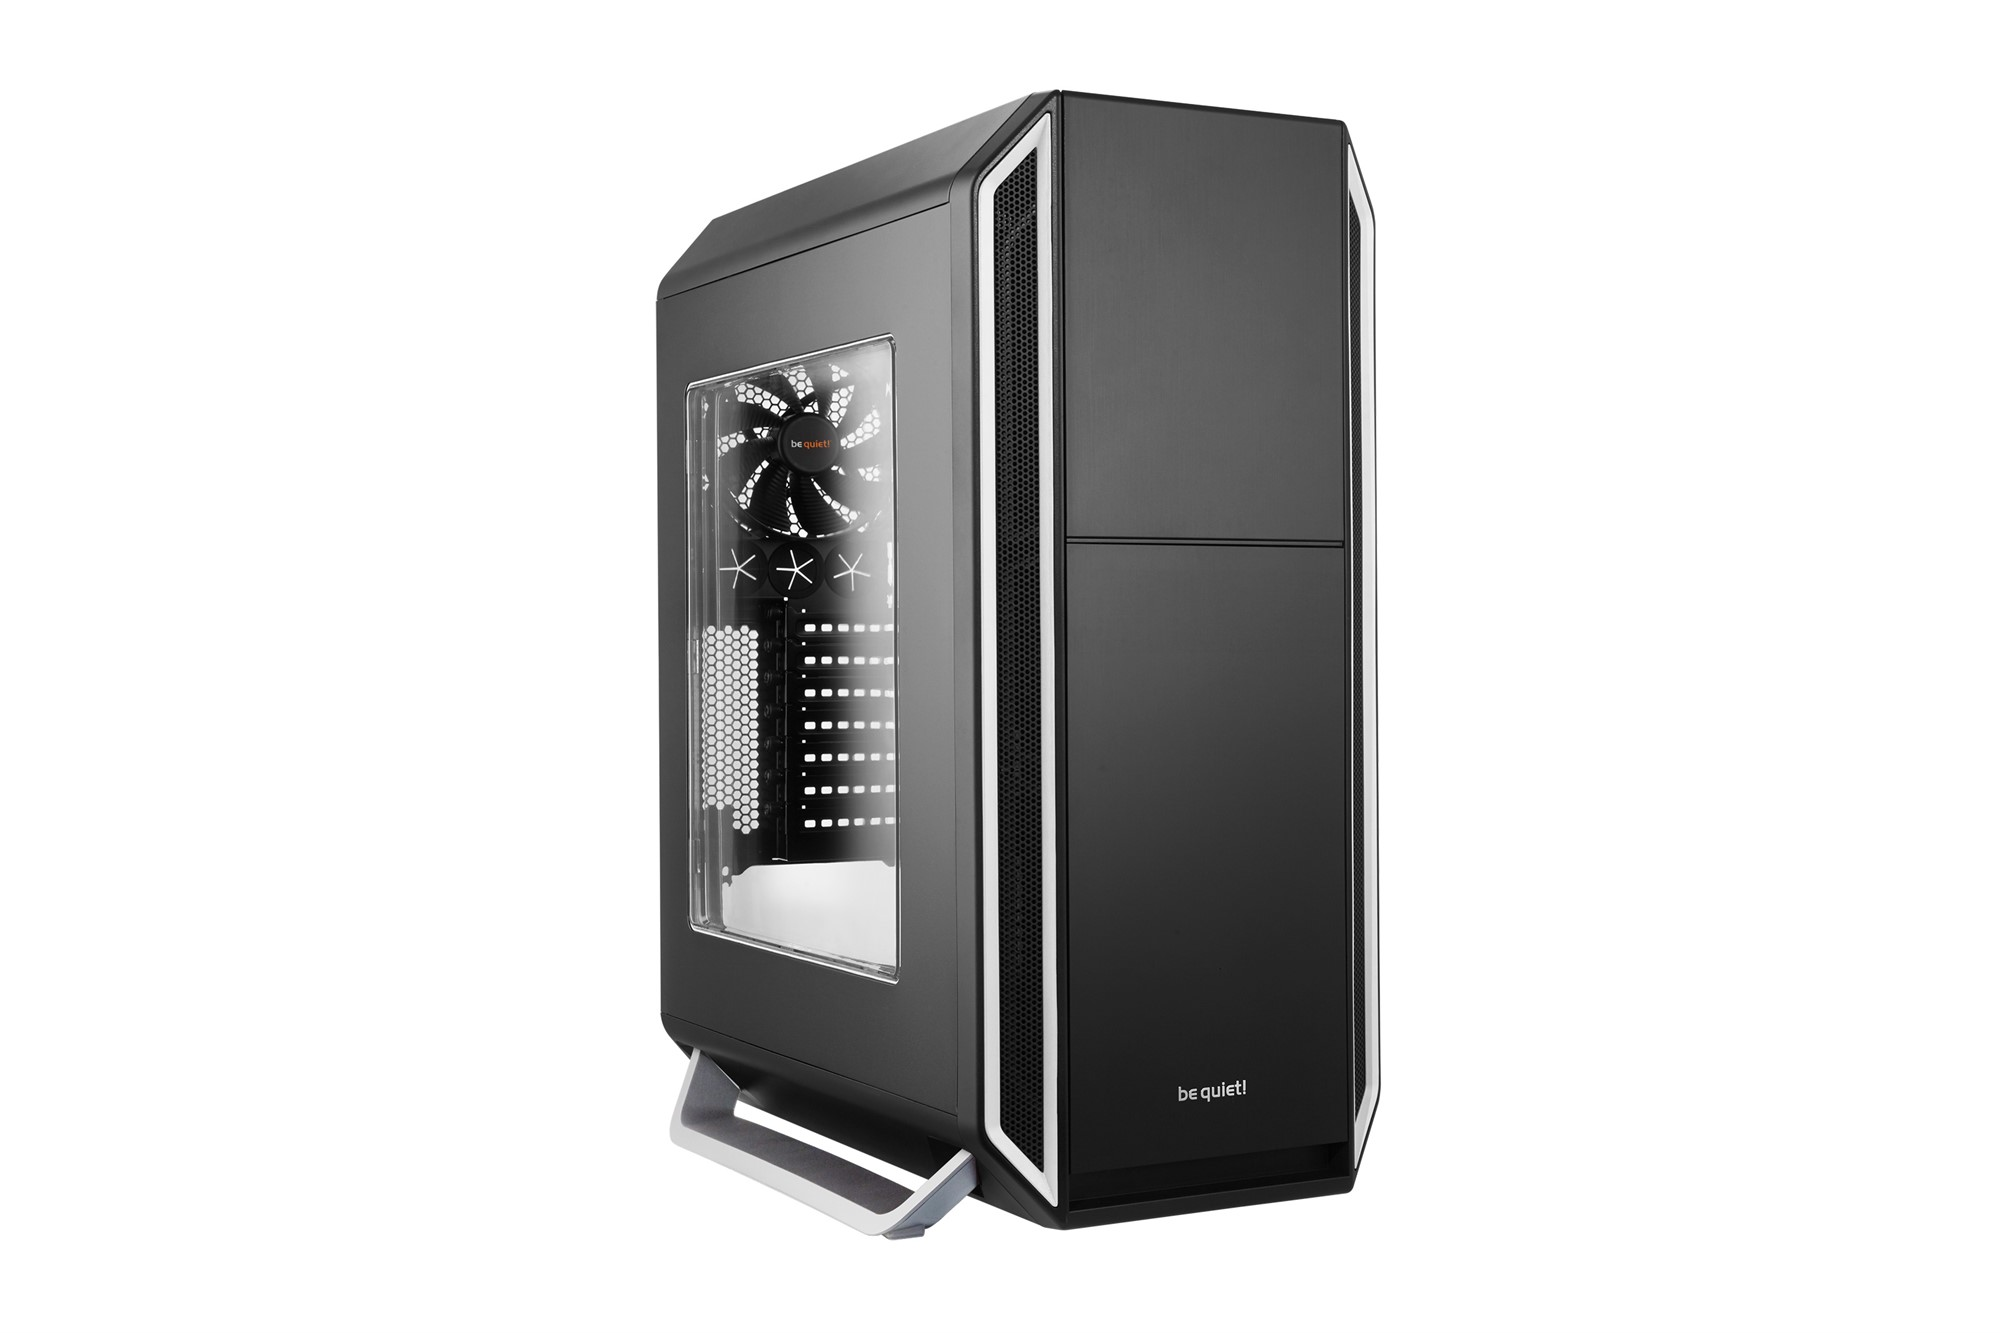 BE QUIET! BGW03 SILENT BASE 800 TOWER BLACK,SILVER COMPUTER CASE